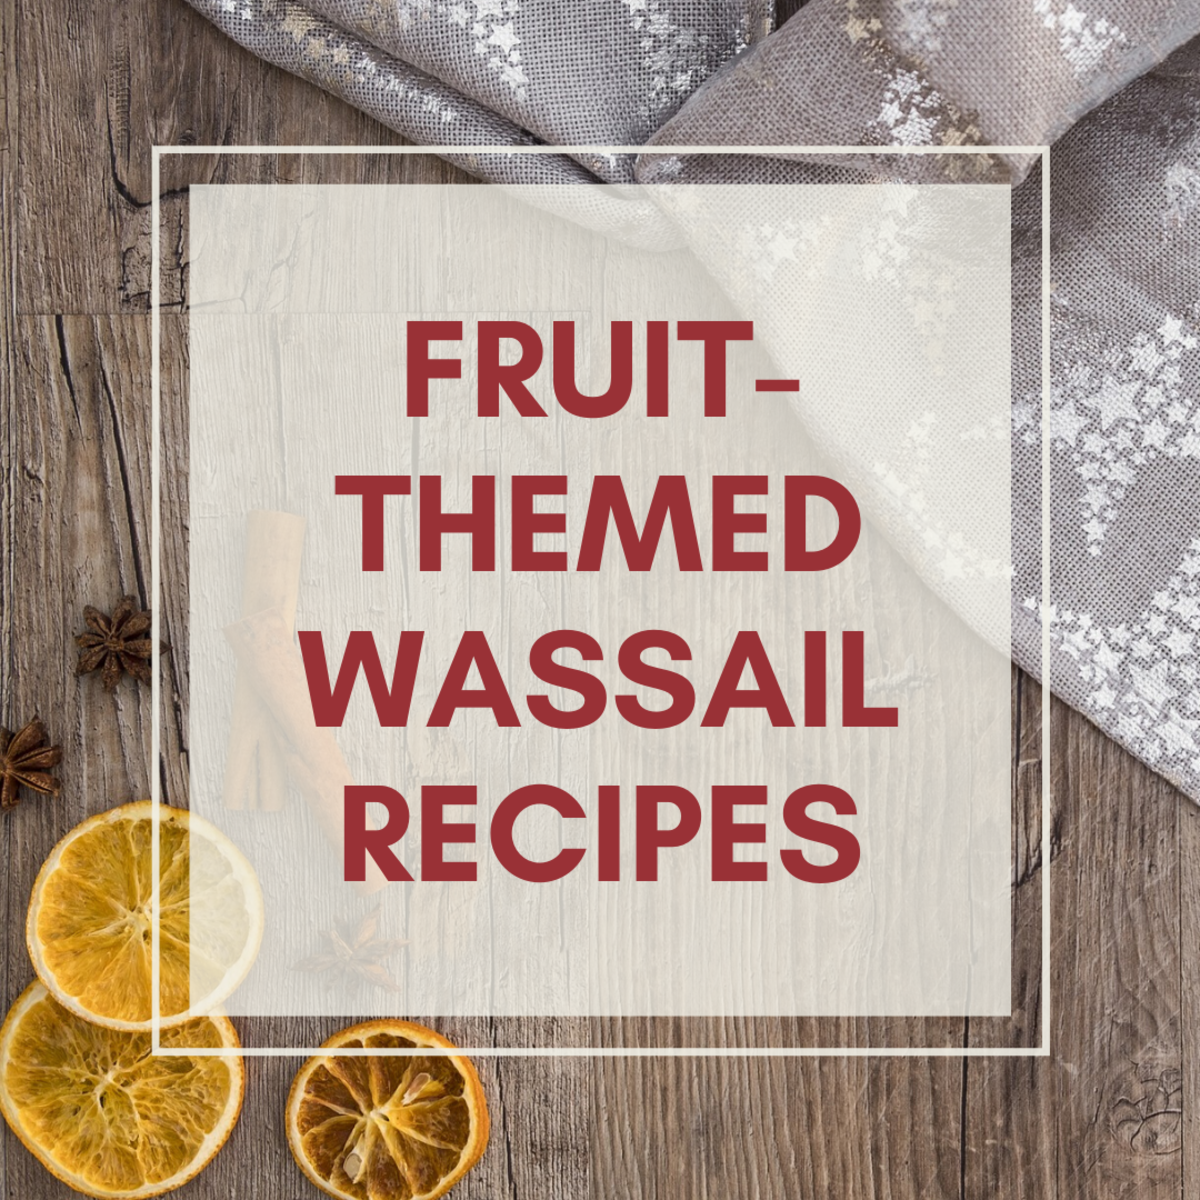 Try adding pineapple, apricots, and more.